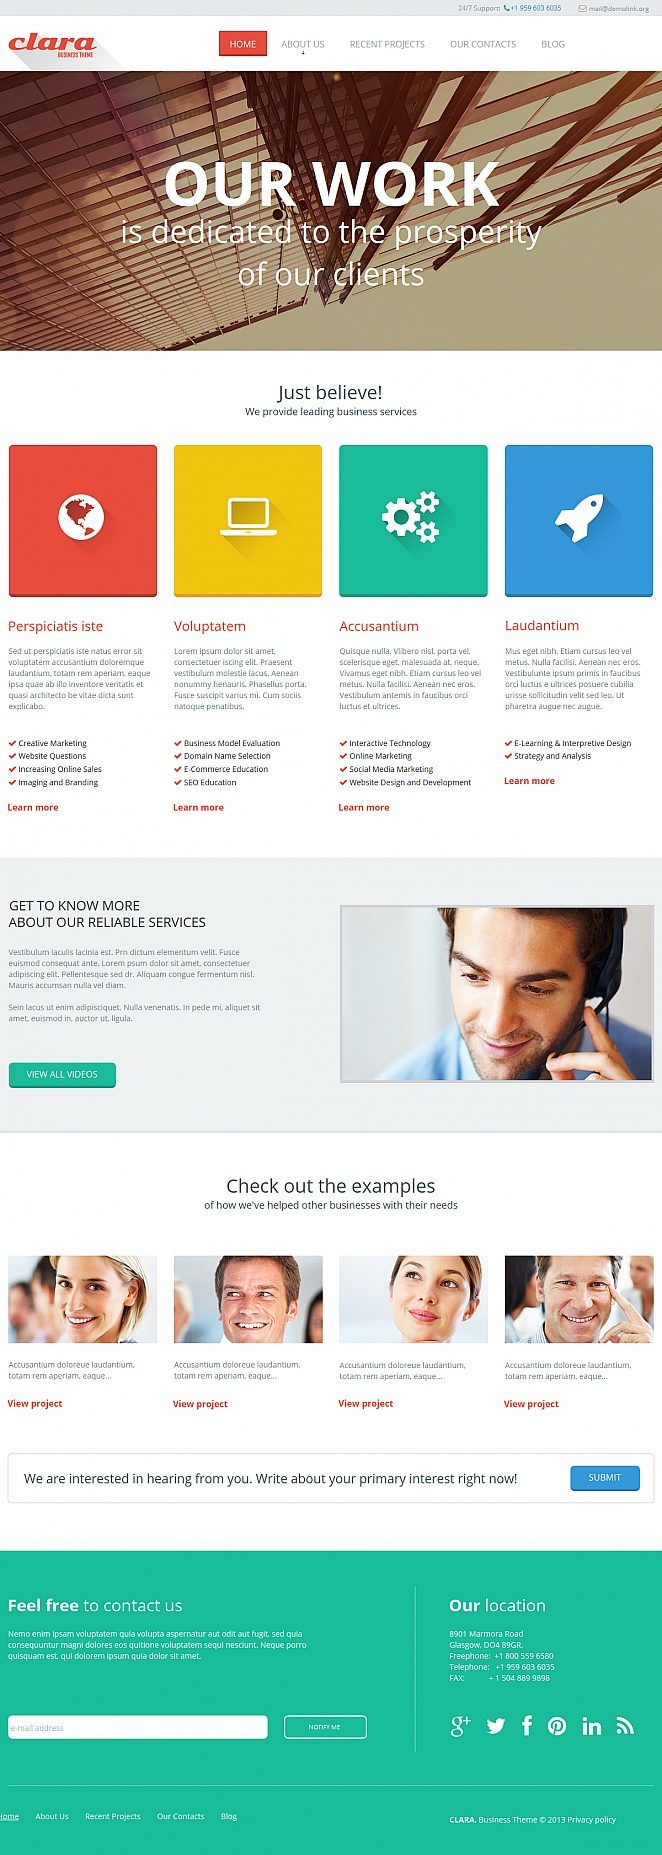 Business Website Template with a Wide Color Spectrum in Design - image